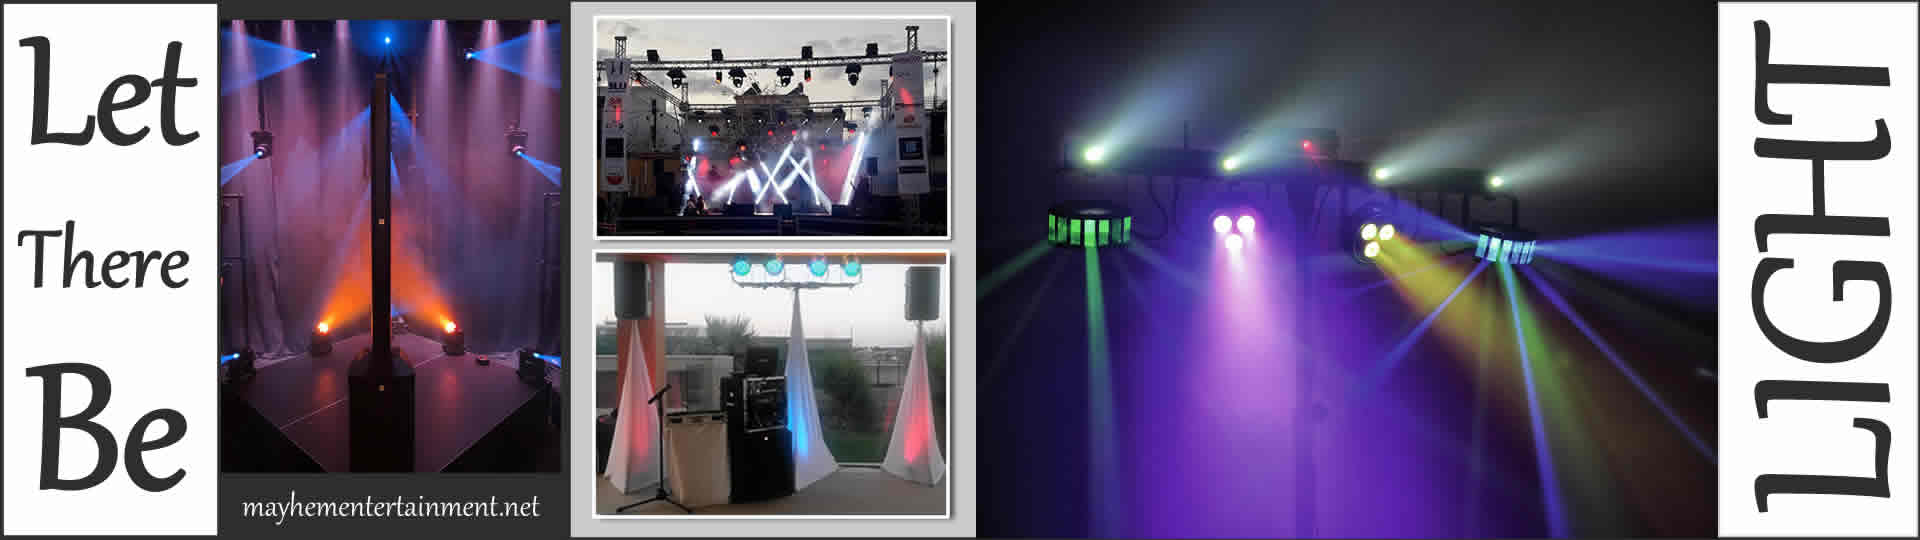 Latest Hi-Tech Lighting Systems Mayhem Entertainment Sound & Lighting + Large Events Hire Mobile Pages